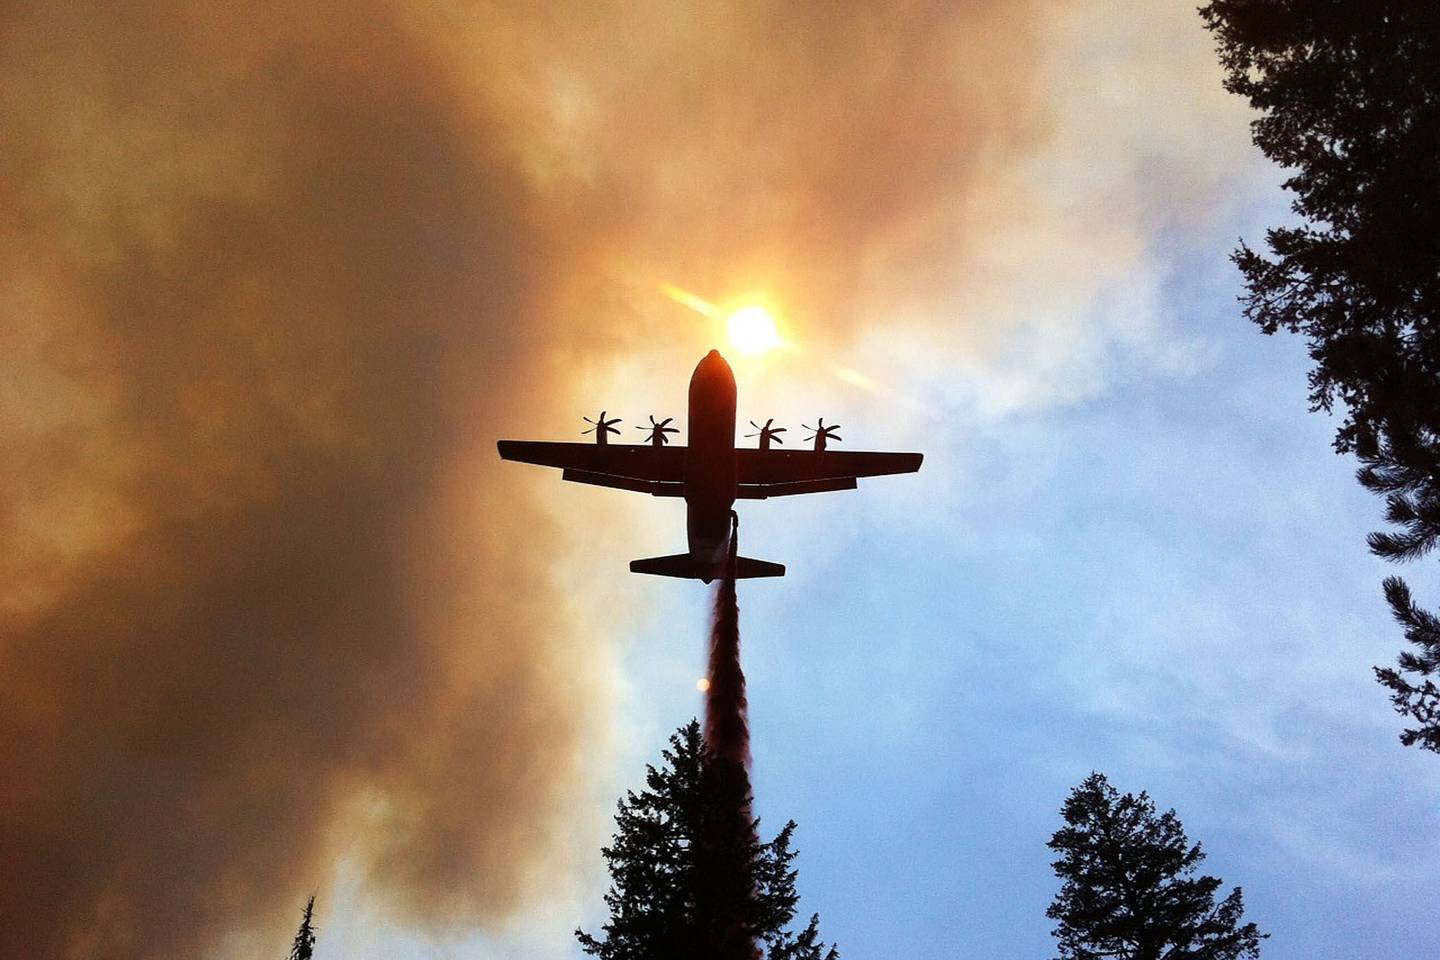 WILDFIRE ASSISTANCE -- A California Air National Guard C130-J Hercules, equipped with Modular Airborne Firefighting System, drops retardant on a wildfire near Twin Falls, Idaho, Aug. 8, 2012. (DOD photo)